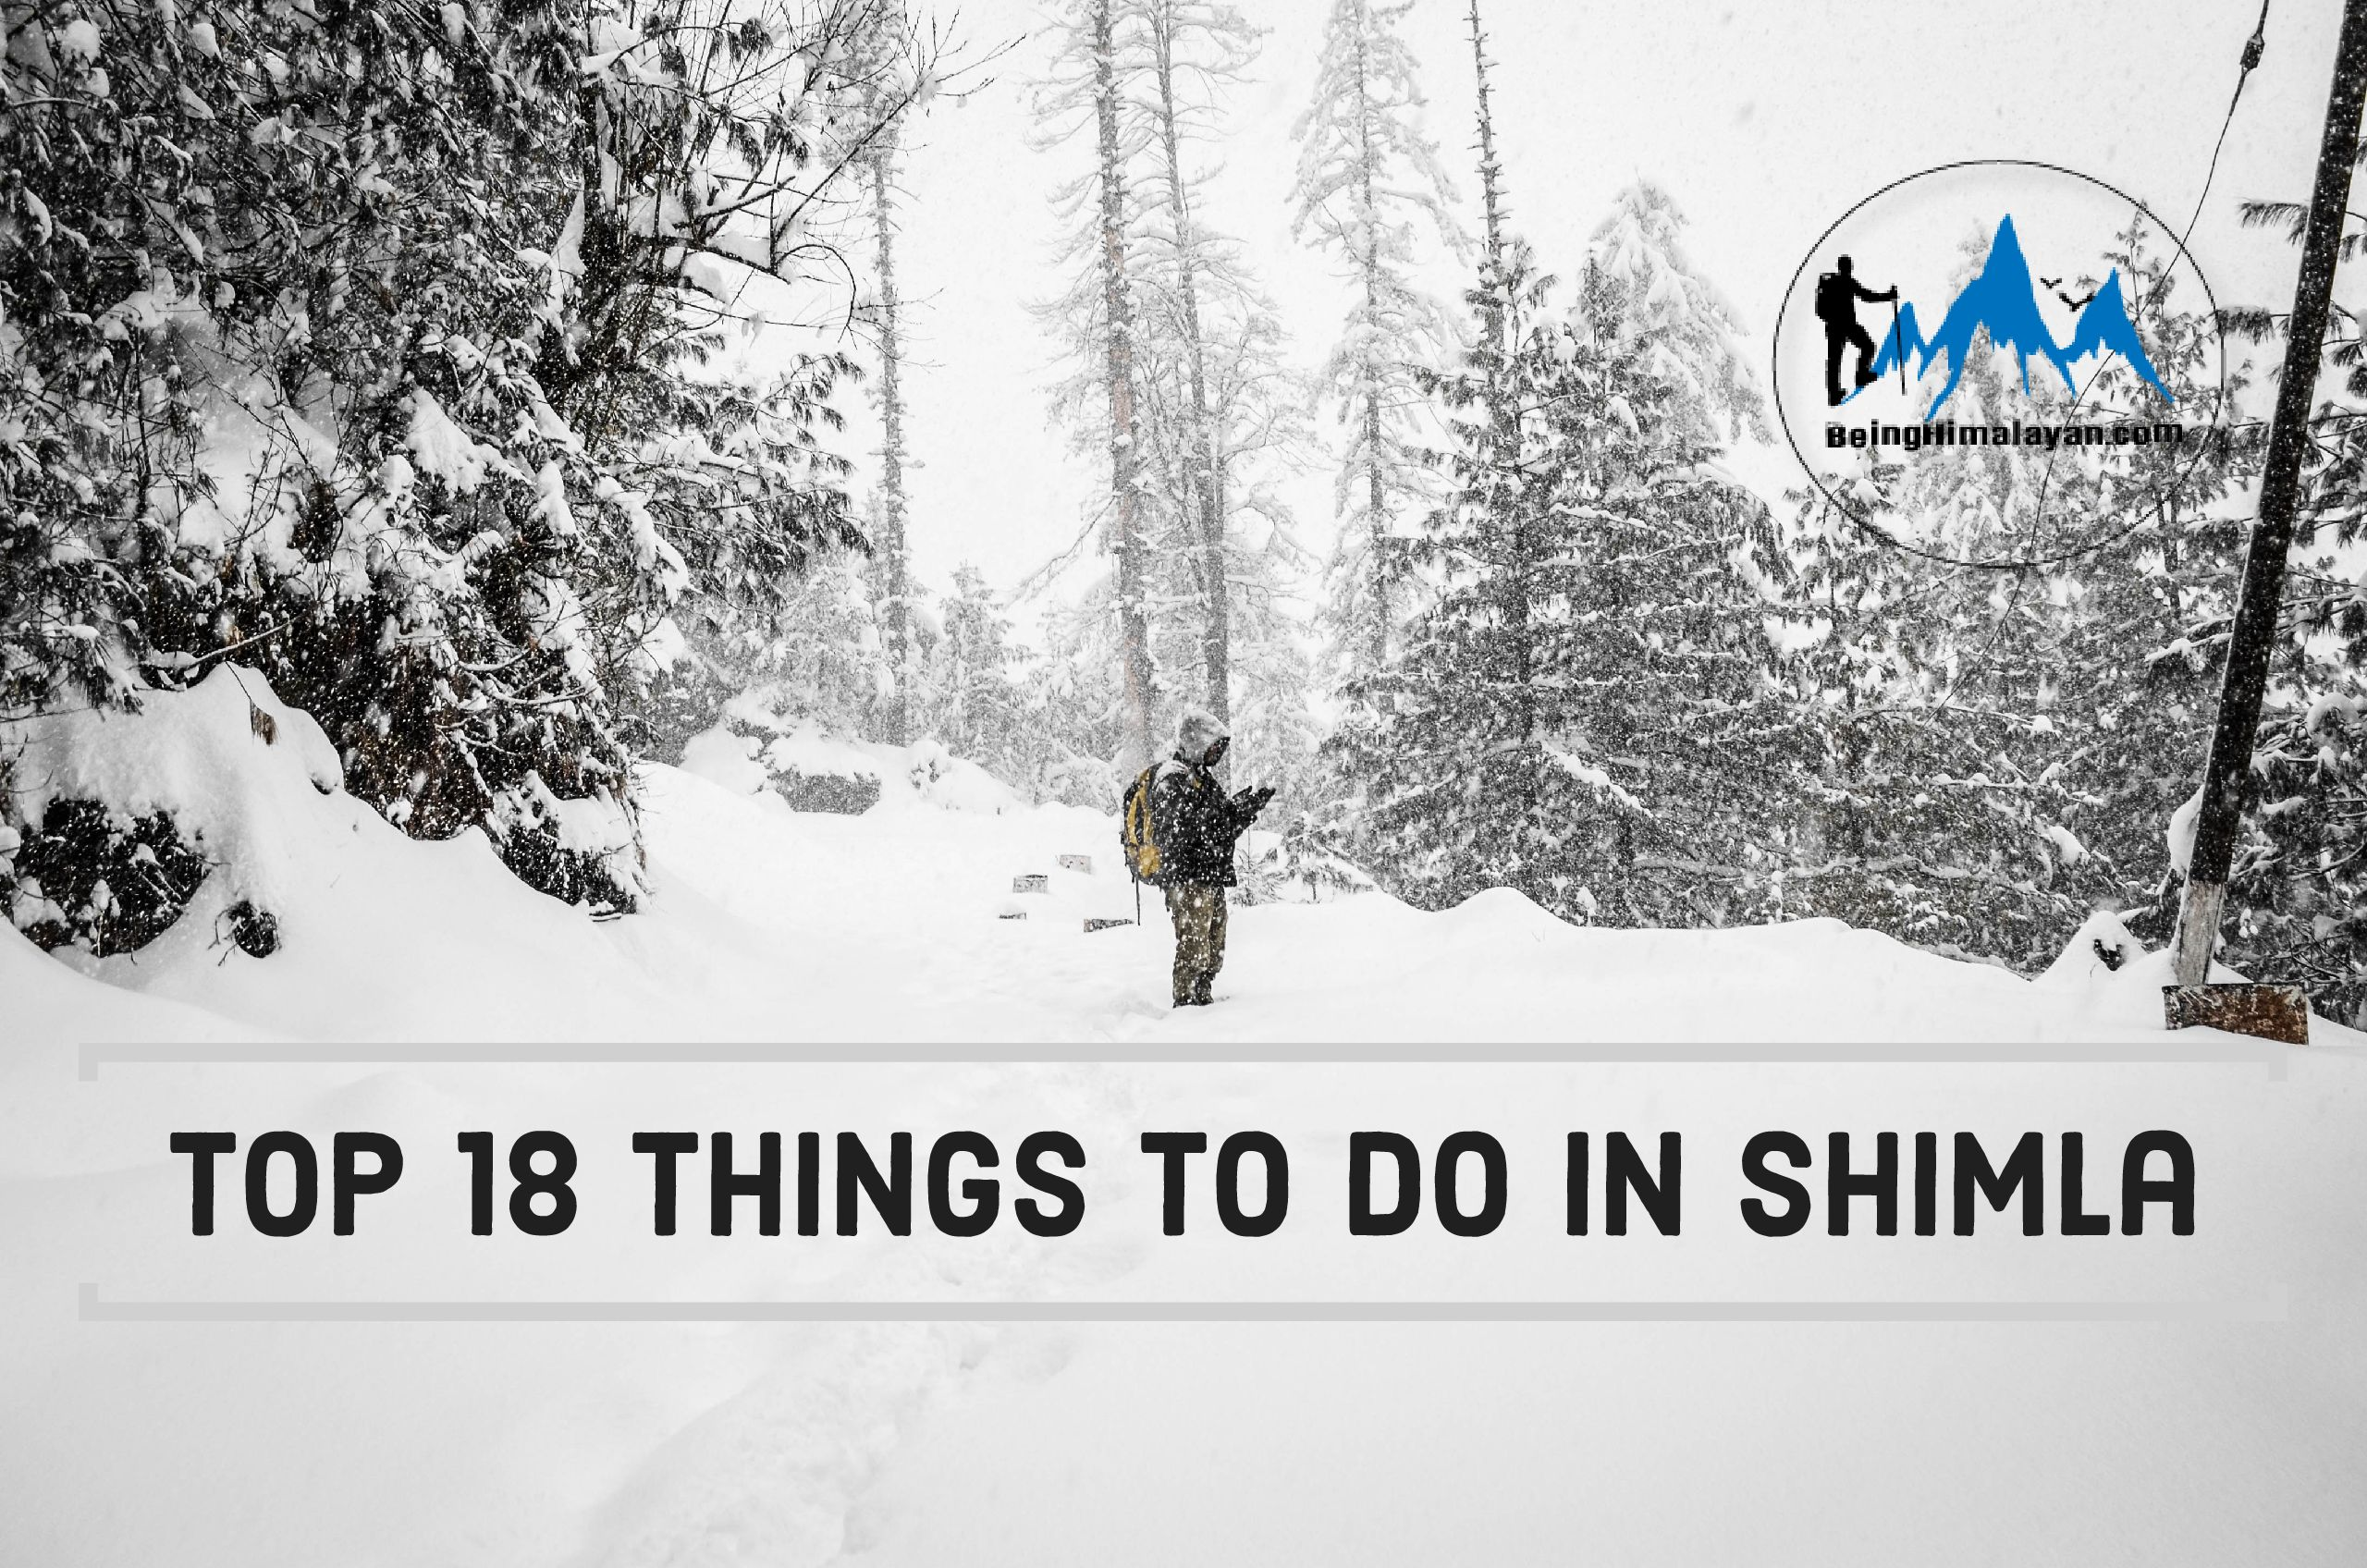 Top 18 Things to do in Shimla